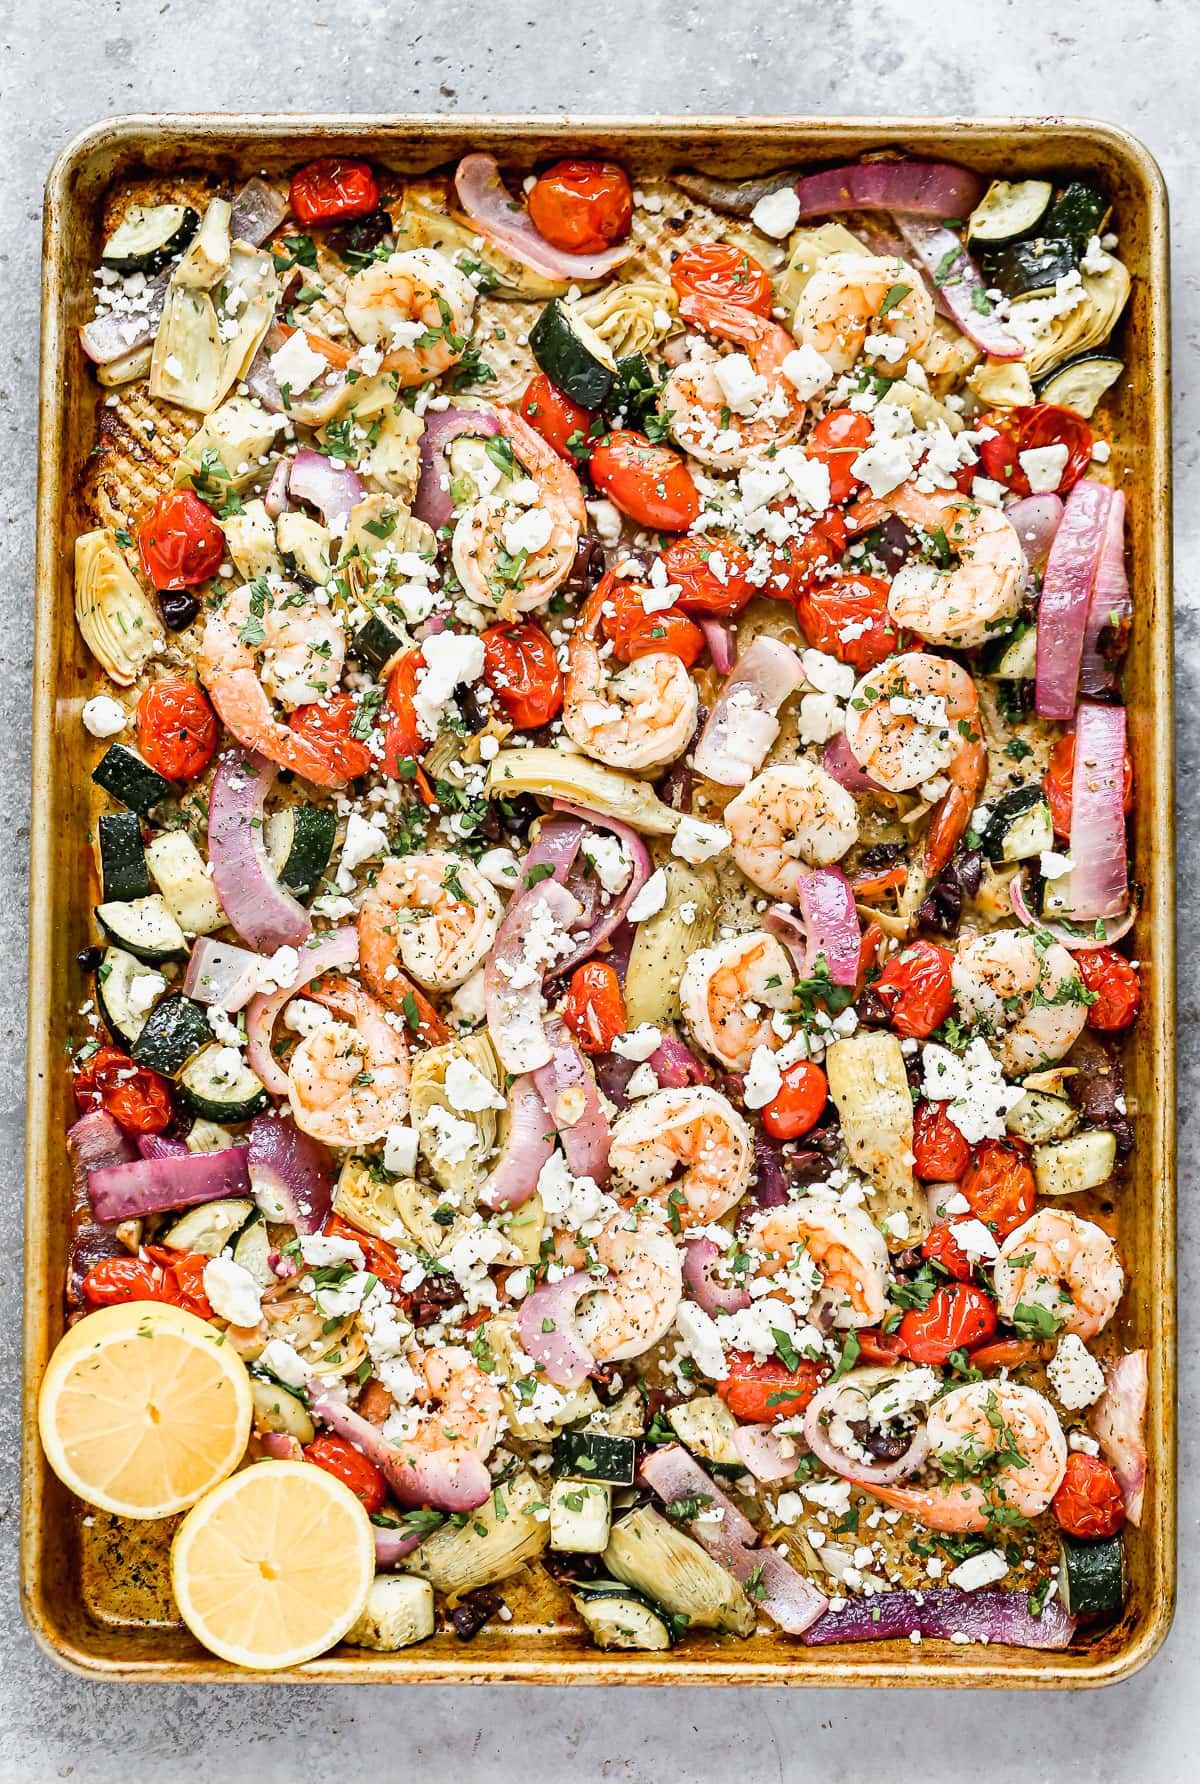 Shrimp, vegetables, and cheese on a baking sheet